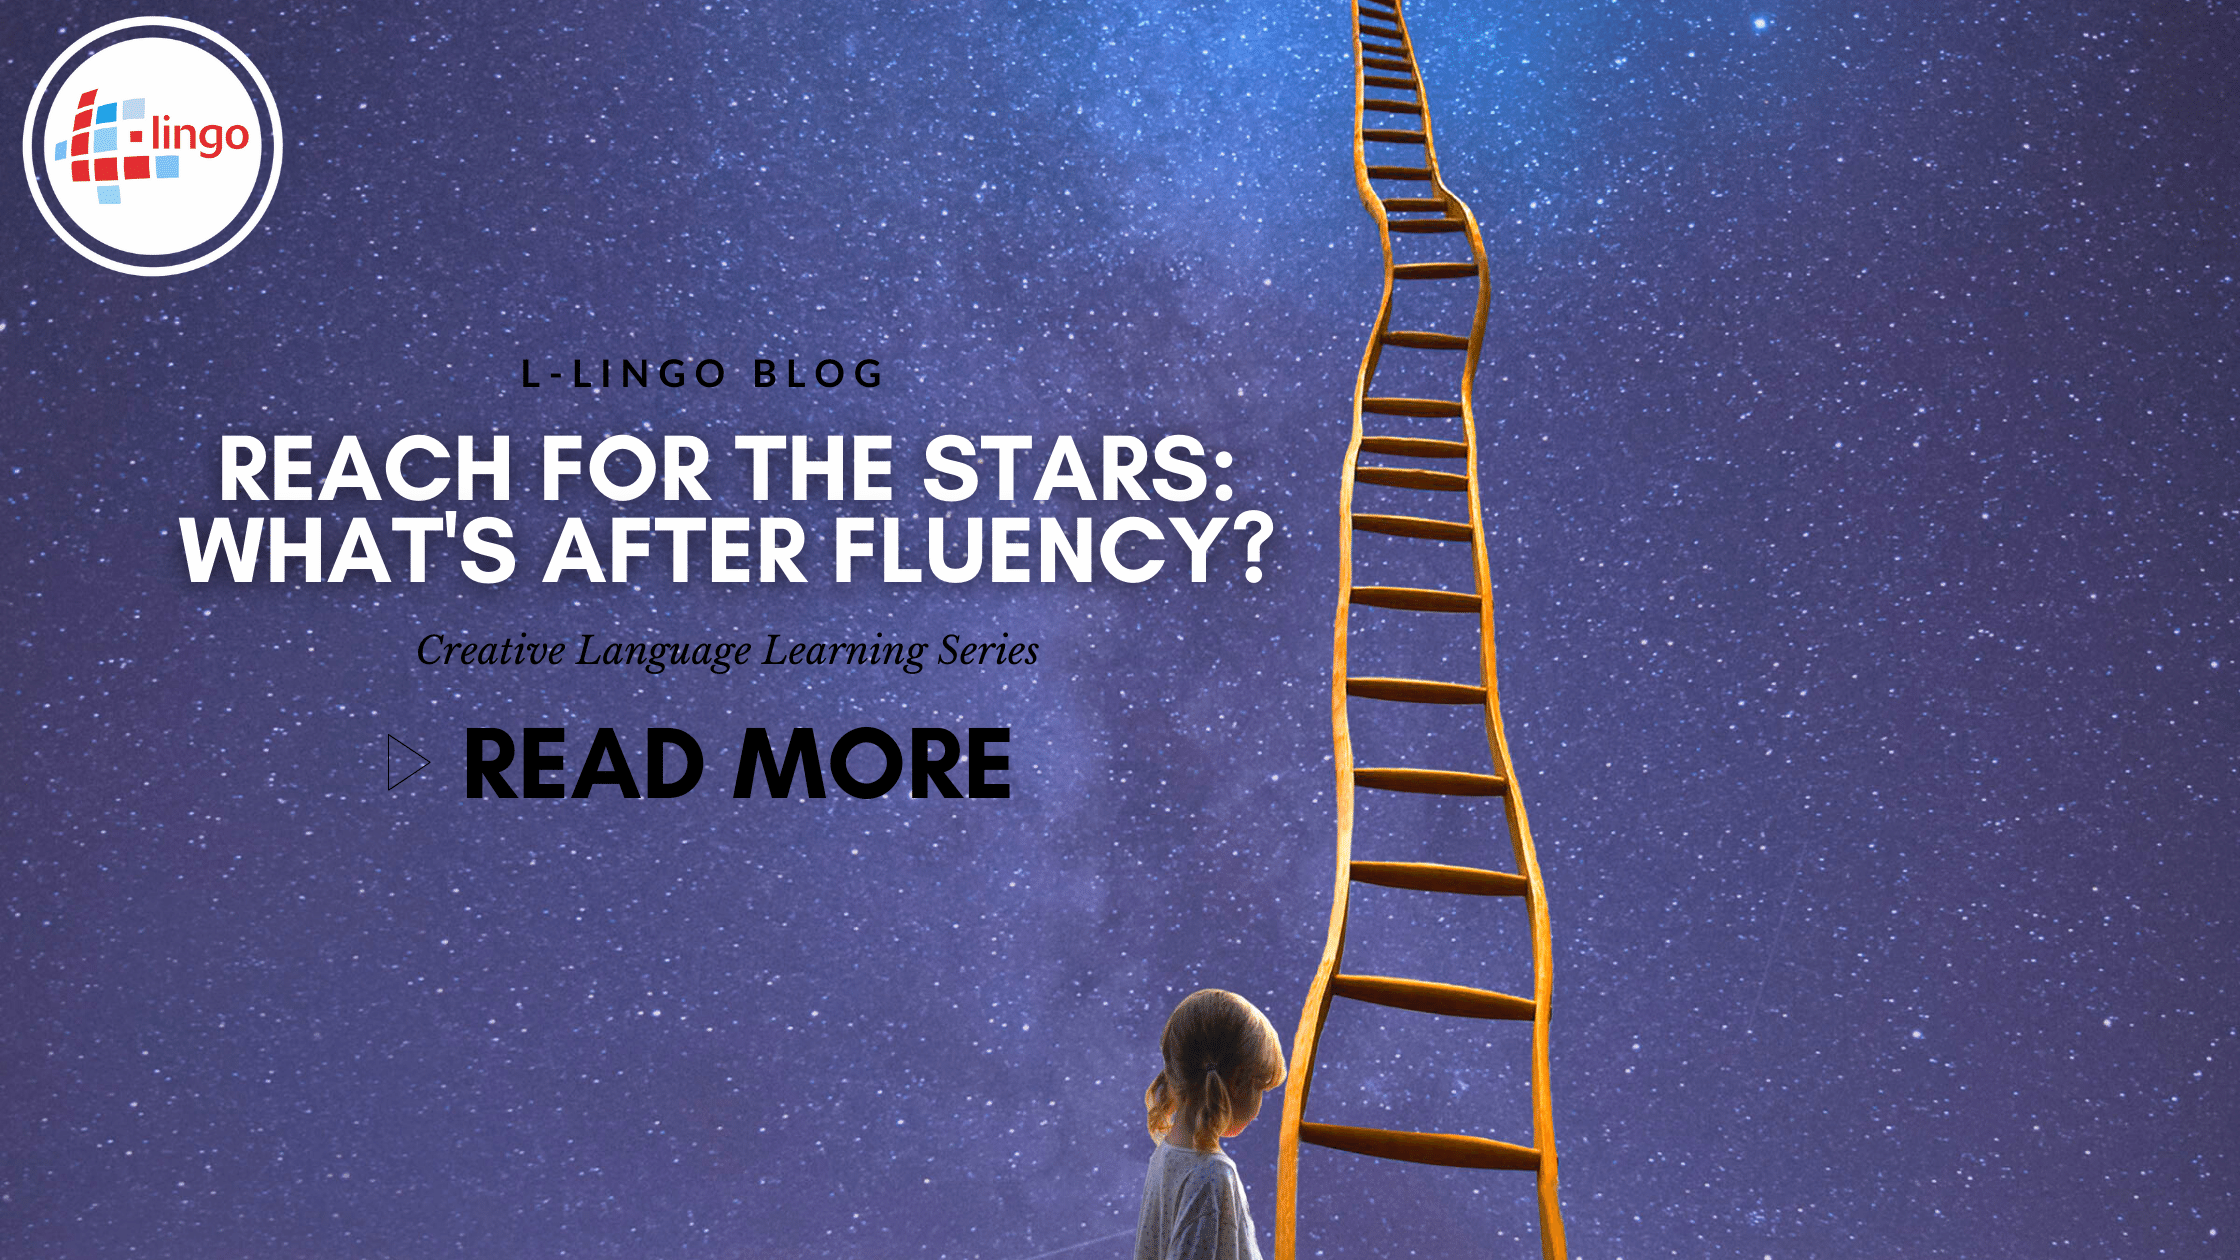 REACH FOR THE STArs: what's after fluency? L-Lingo Language Learning Blog